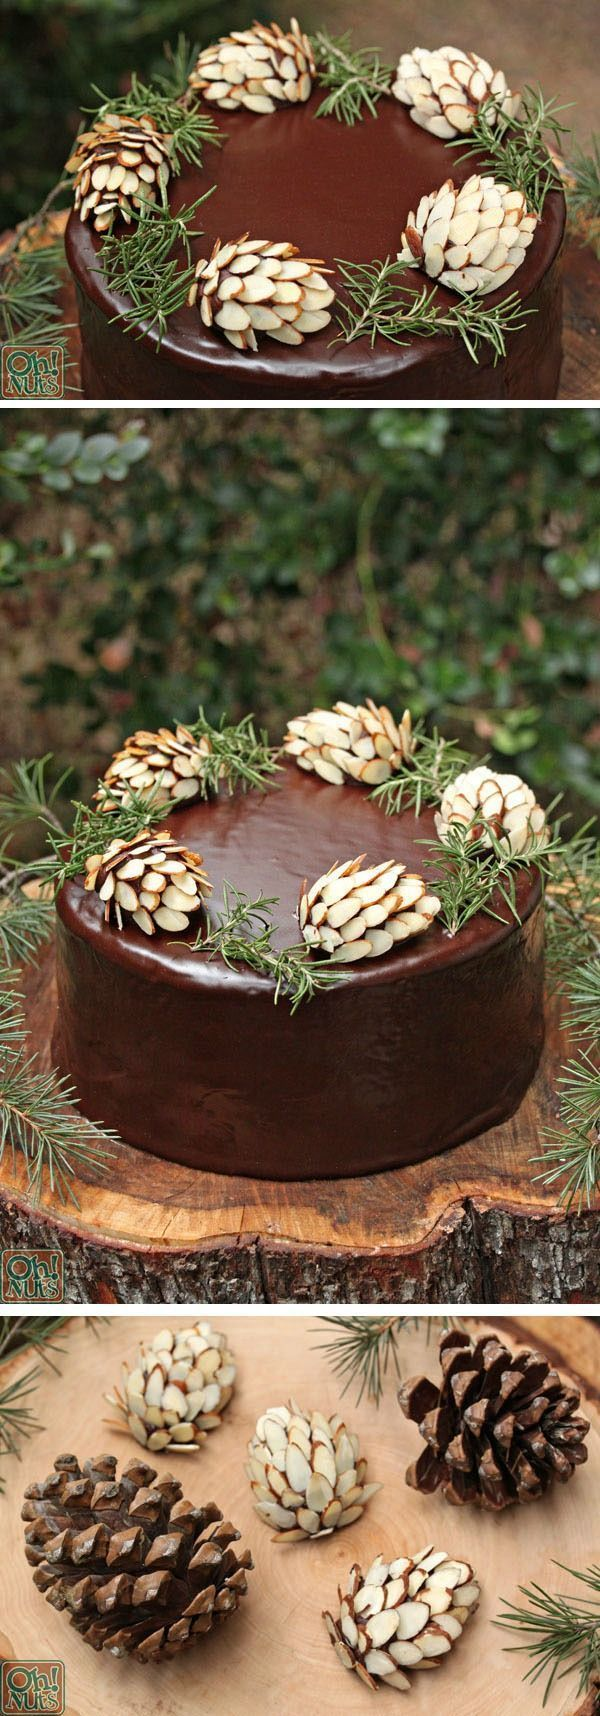 Chocolate Pine Cones made with chocolate fudge and almonds. Easy and so perfect for a rustic Thanksgiving dessert! #FallPinLove